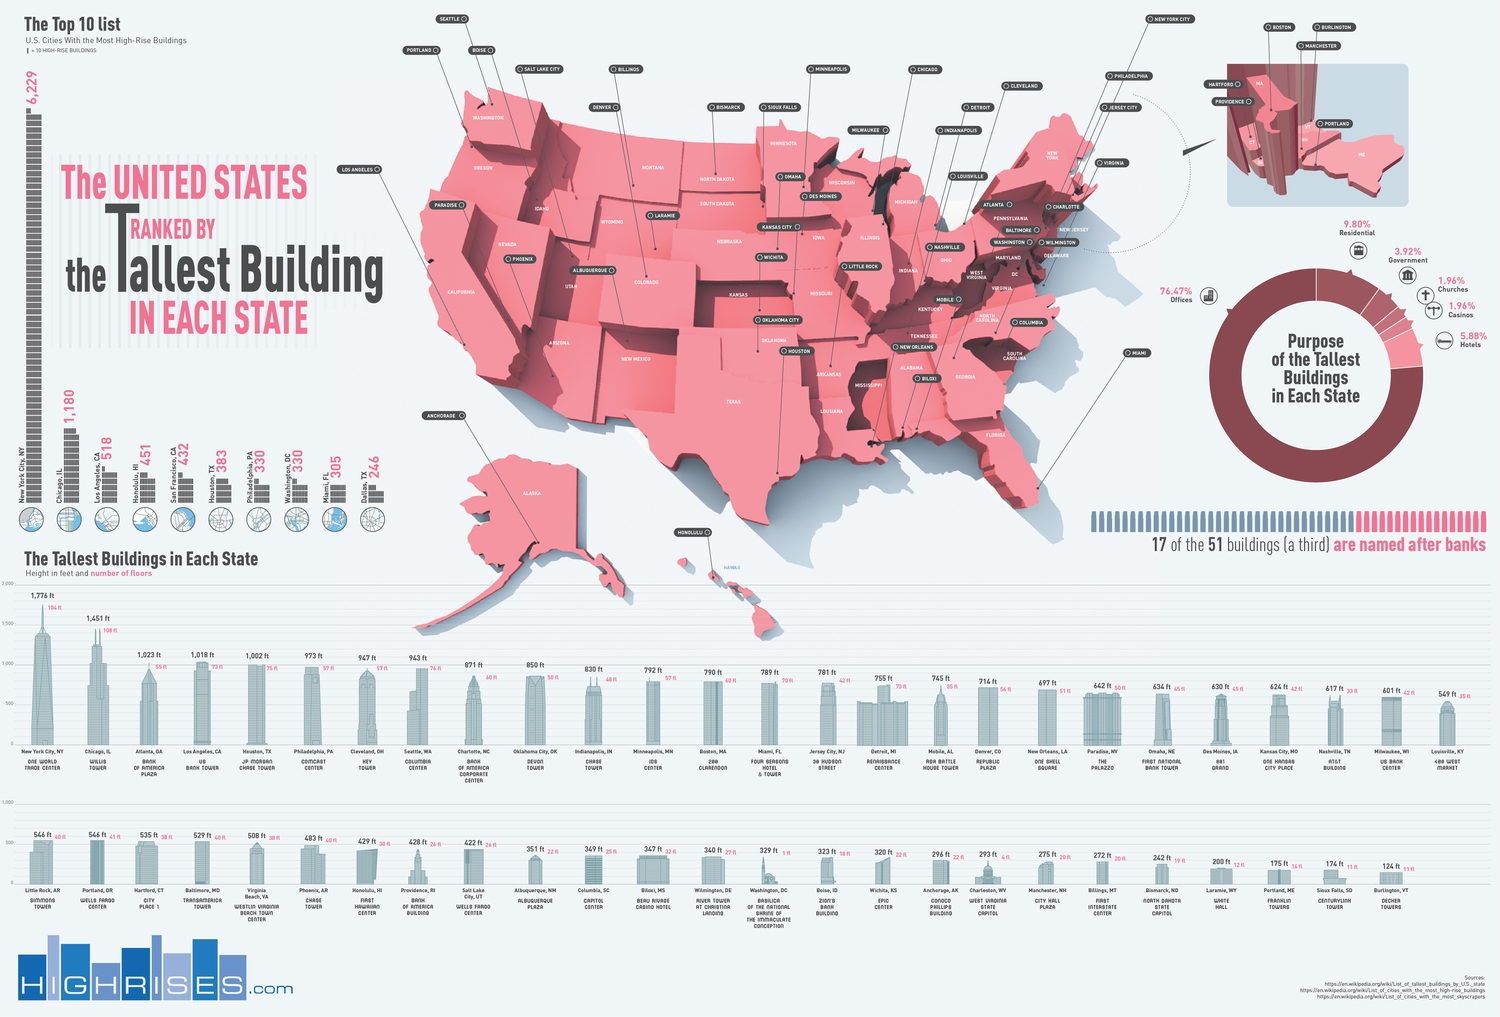 I thought this was an interesting way to visualize the tallest buildings in each state. The map is interesting by itself but would be nearly impossible to decipher without the buildings actually shown side-by-side at the bottom.